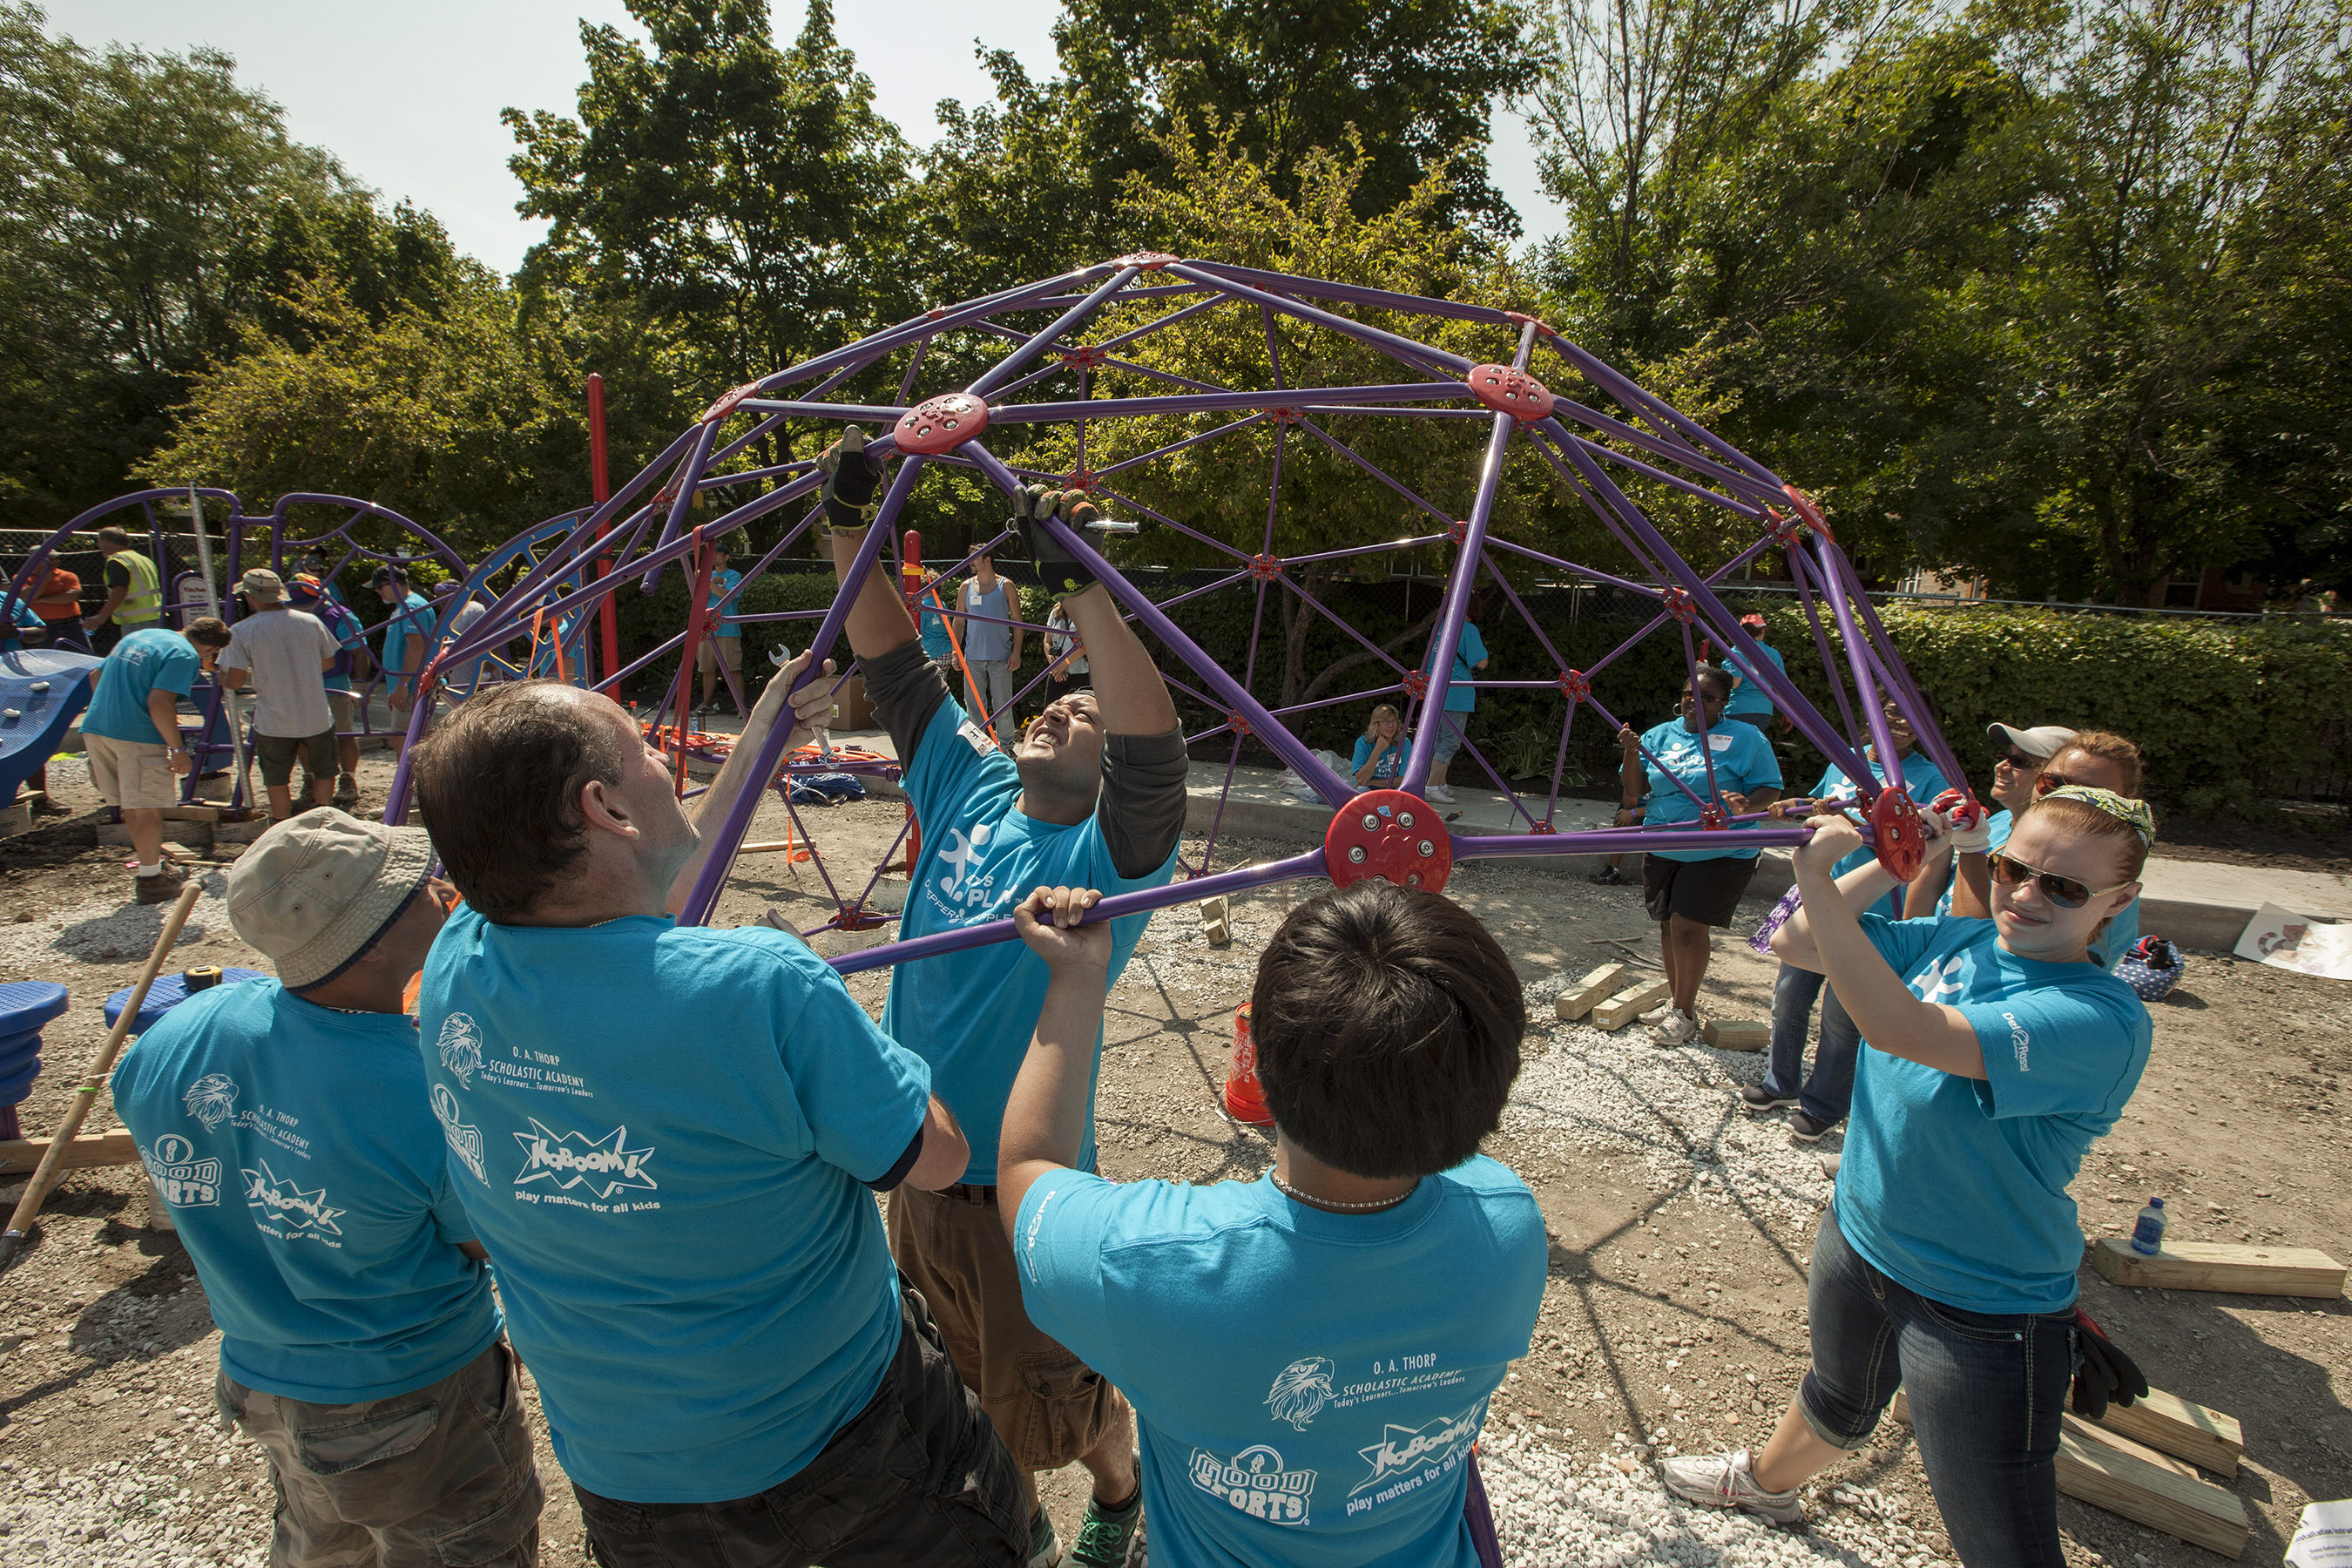 Volunteers work to set up play structure for kids at Let's Play playground build in Chicago